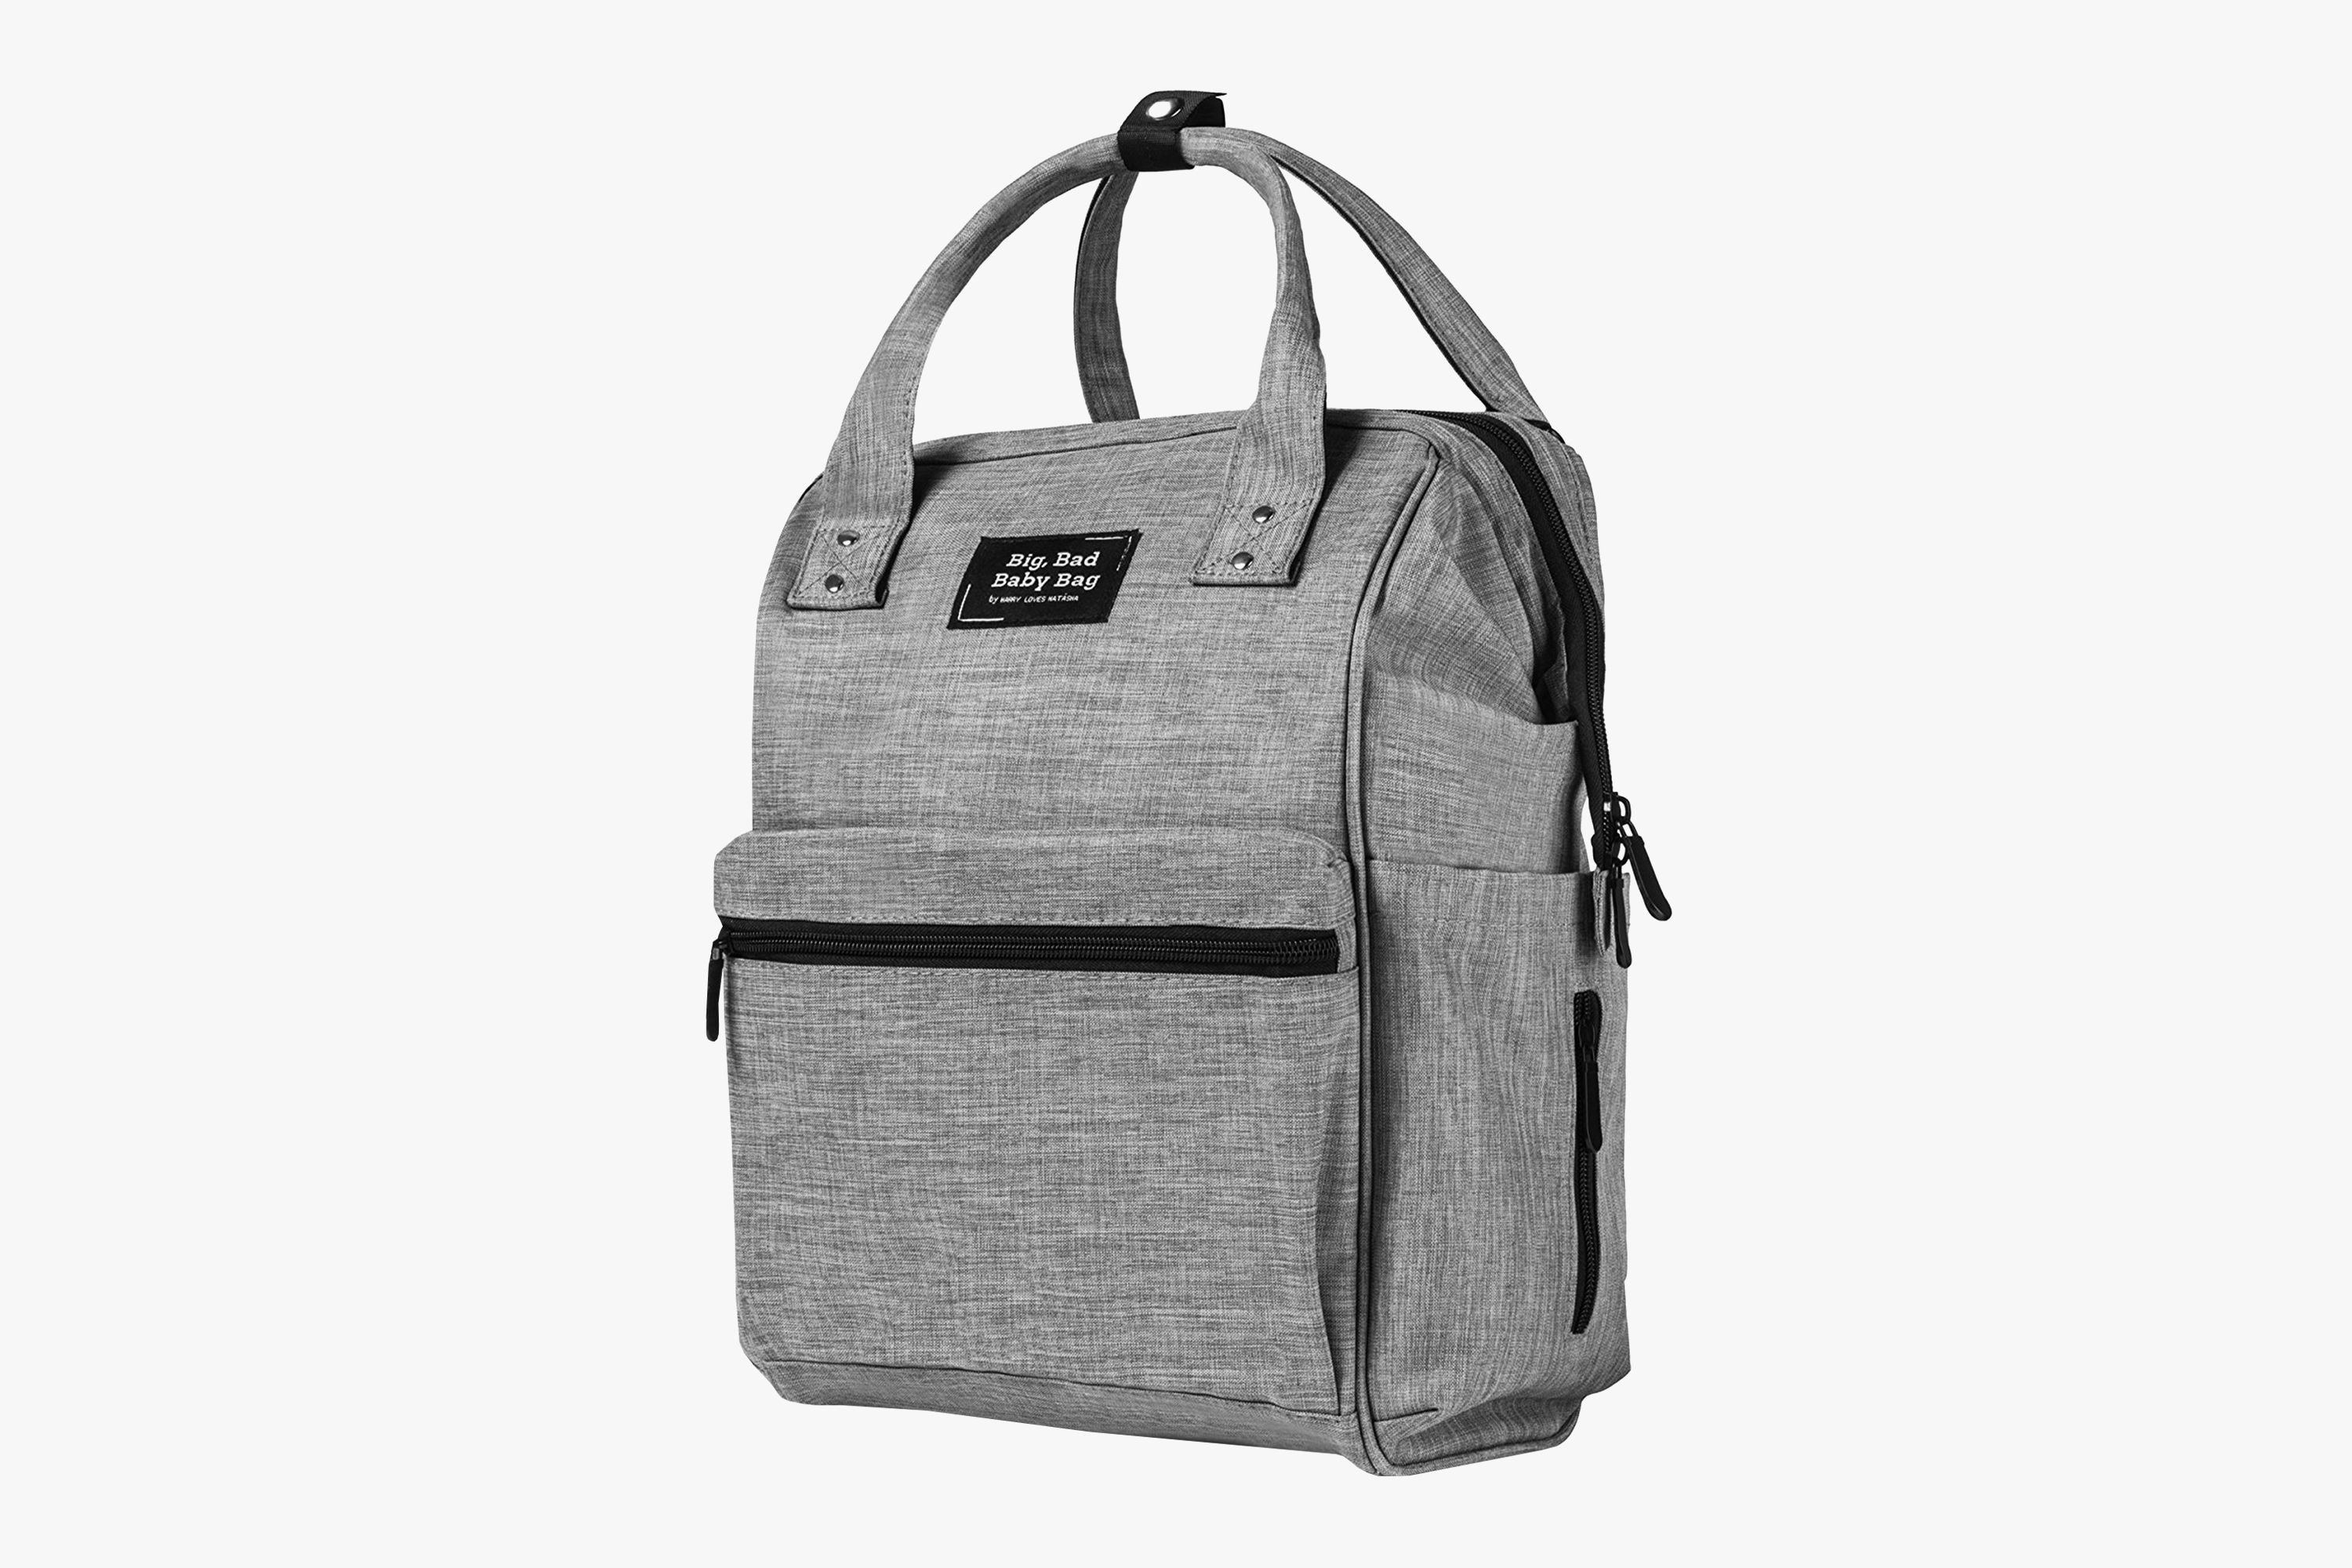 Best Diaper Bag For Dads